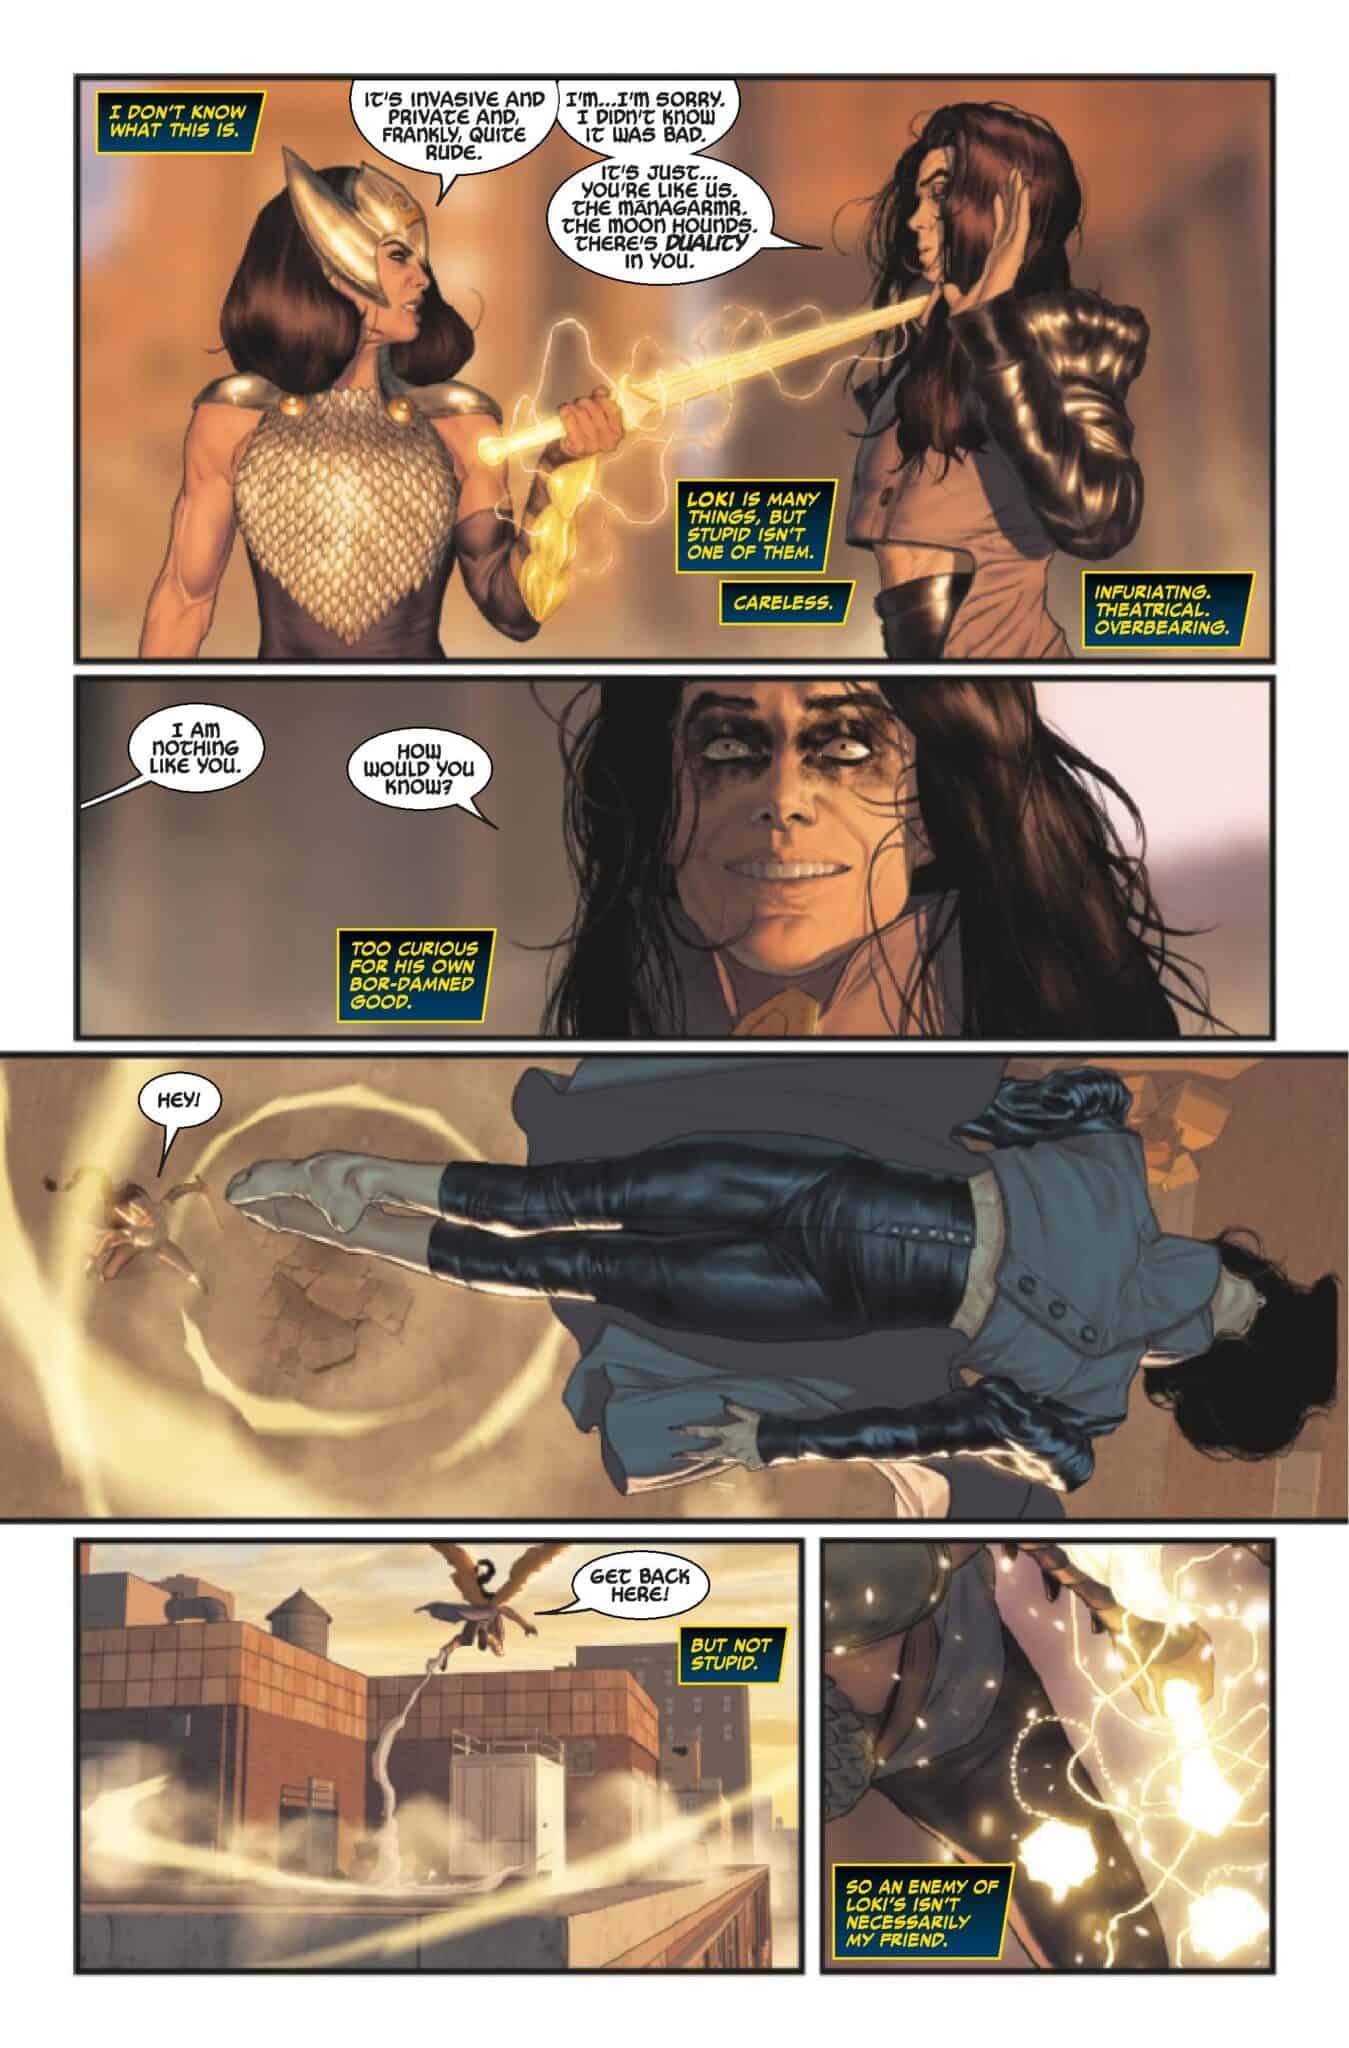 MIGHTYVALKYRIES2021002_Preview-page-004-1349x2048